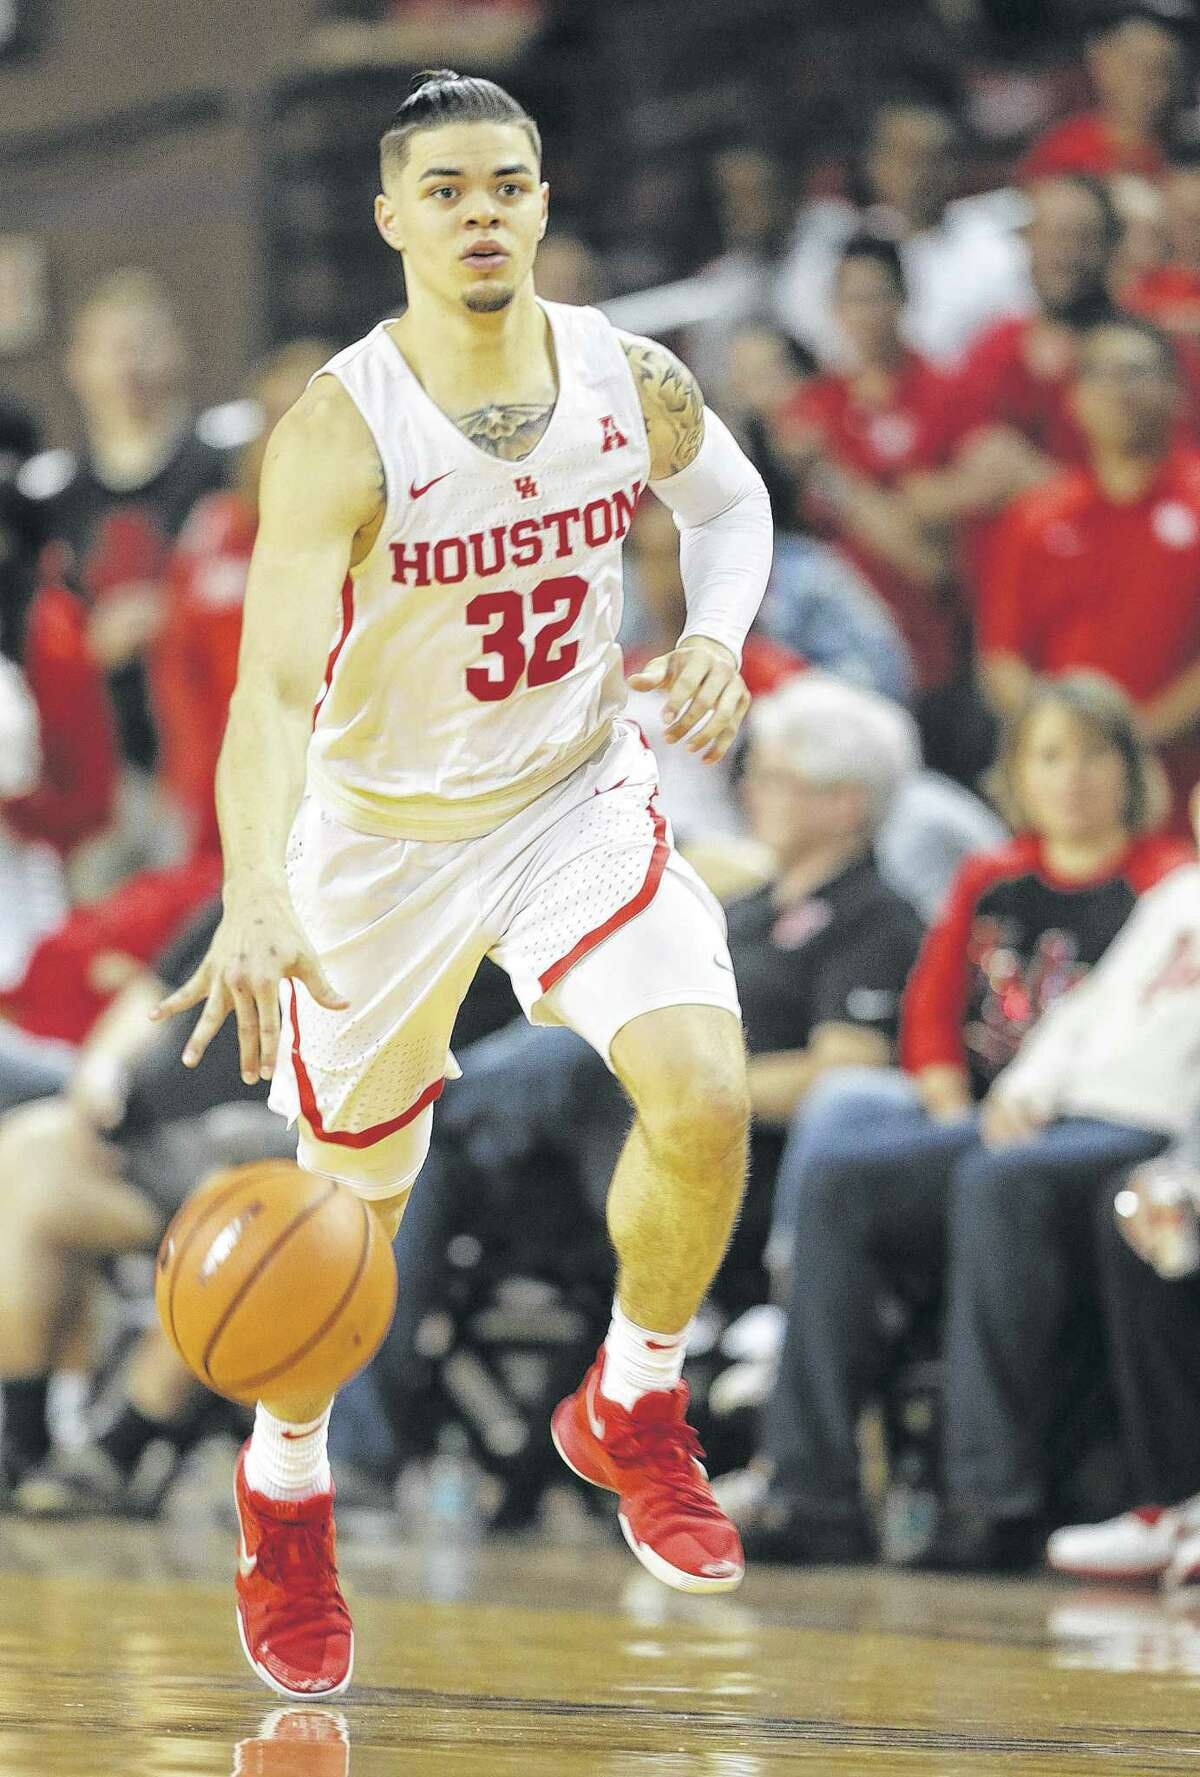 Houston Cougars guard Rob Gray (32) dribbles across the court against Connecticut Huskies at H&PE Arena at TSU on Sunday, March 4, 2018, in Houston. Houston Cougars won the game 81-71. ( Elizabeth Conley / Houston Chronicle )